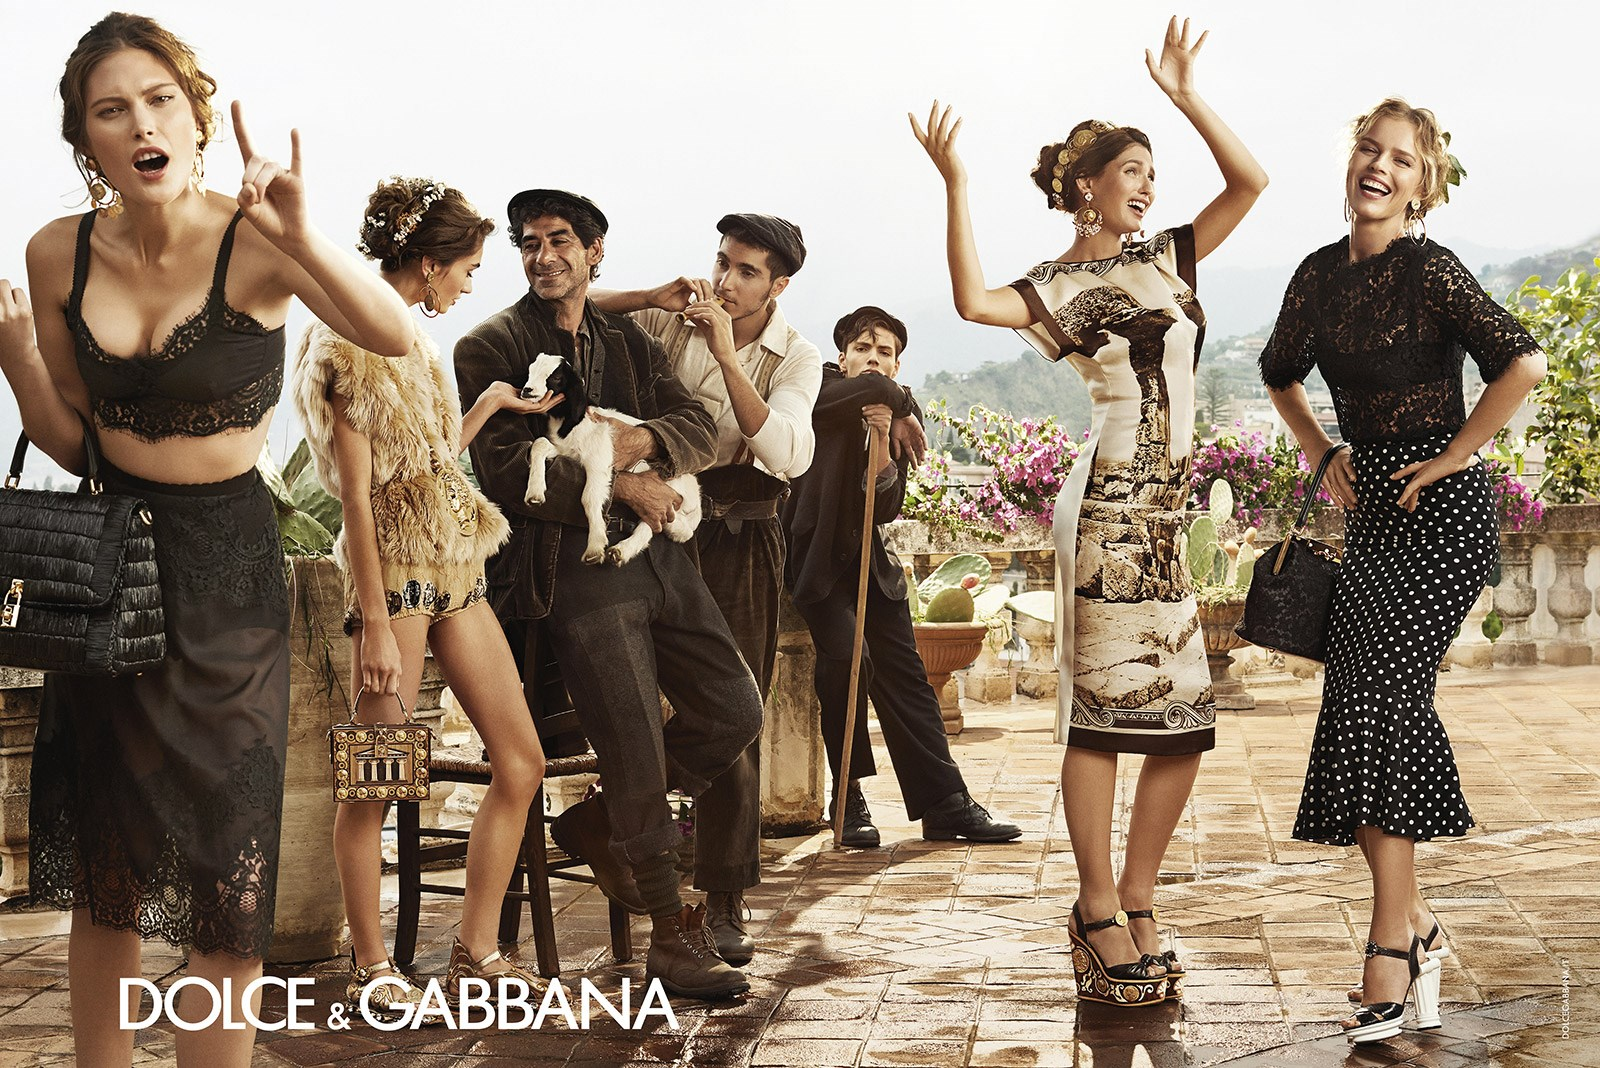 dolce and gabbana advertisement